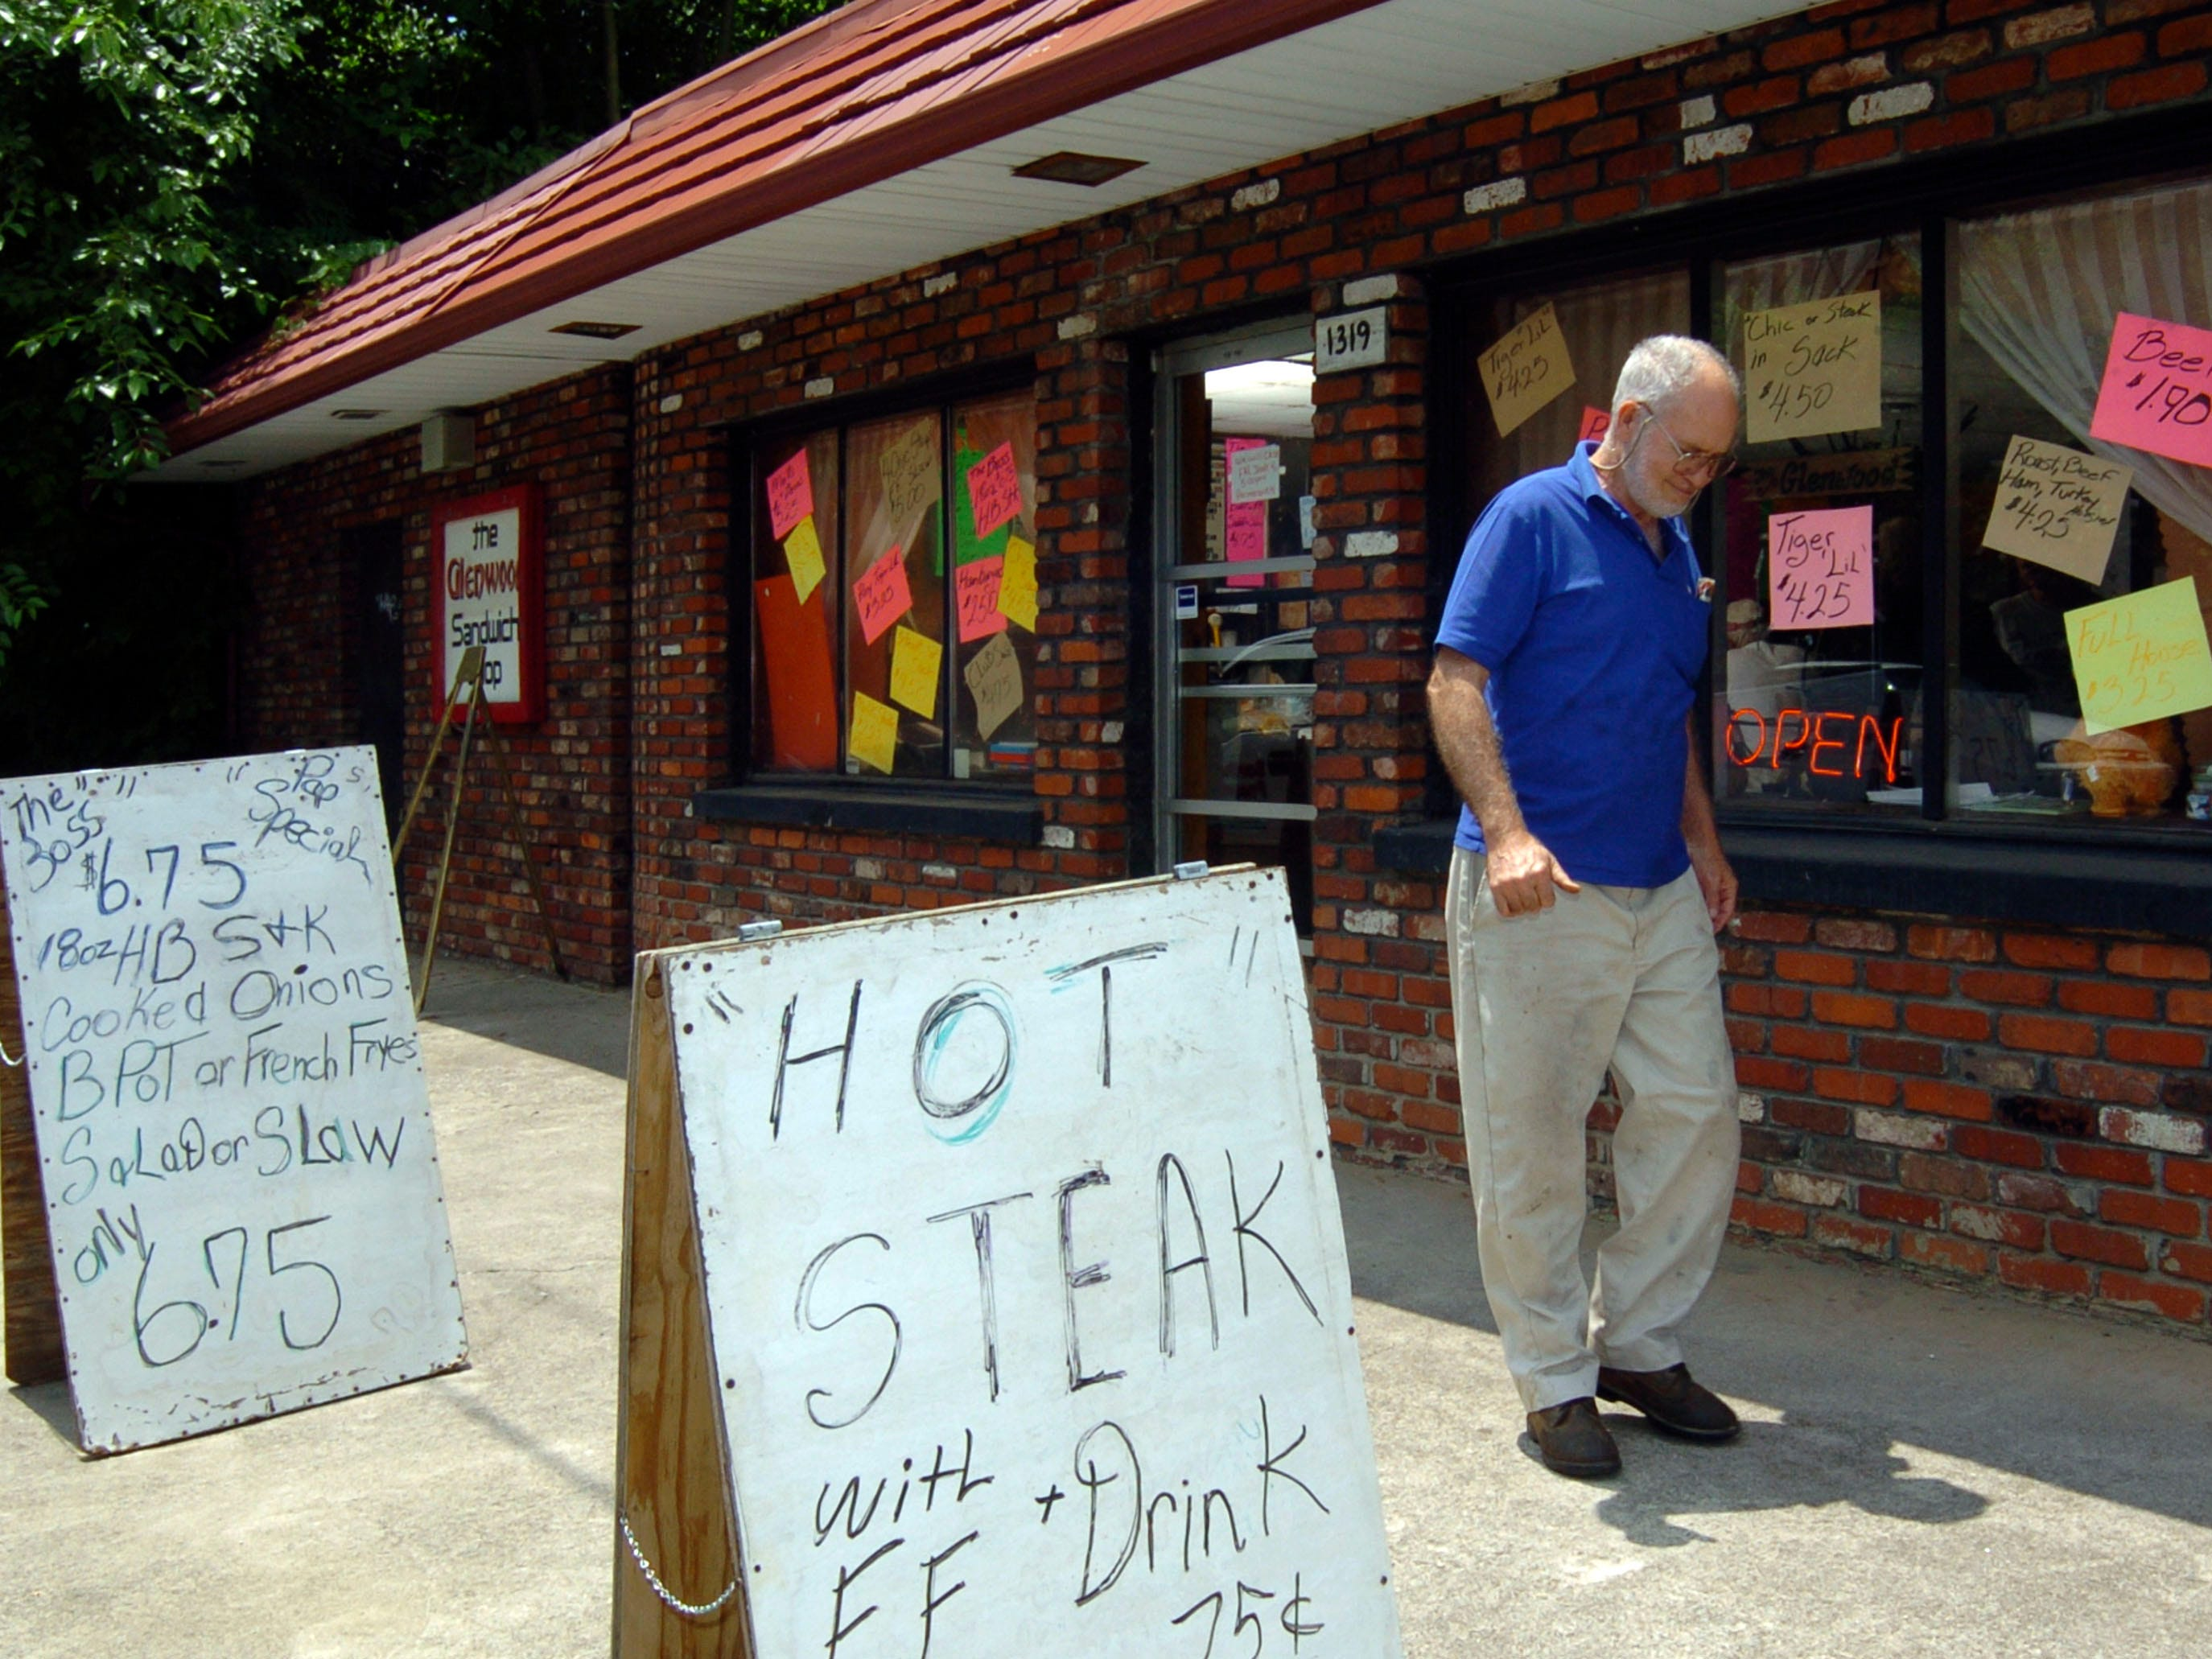 Jack Sartin, 72, leaves the Glenwood Sandwich Shop for the last time Thursday, June 3, 2004 in the Fourth and Gill neighborhood. Sartin said he has been a customer at the sandwich shop for 56 years and will be sorry when when it closes the next day.